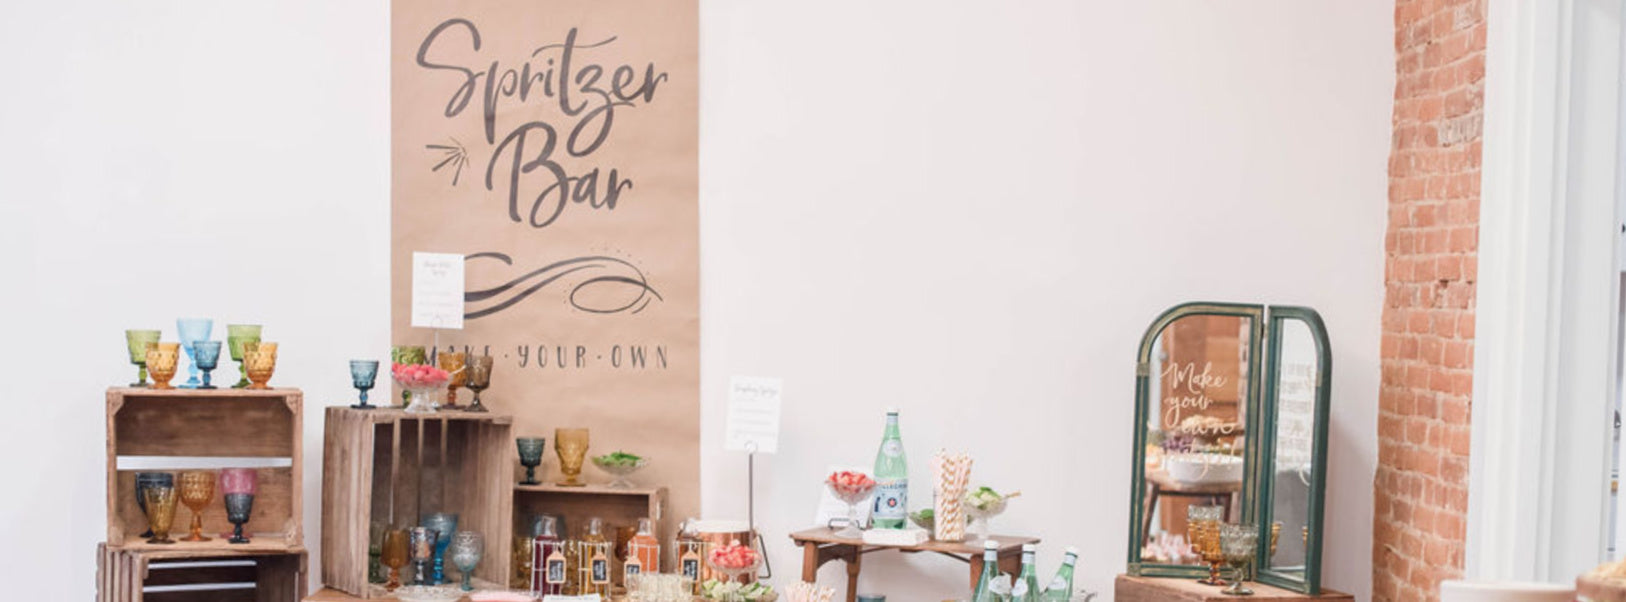 DIY Spritzer Bar For A Party